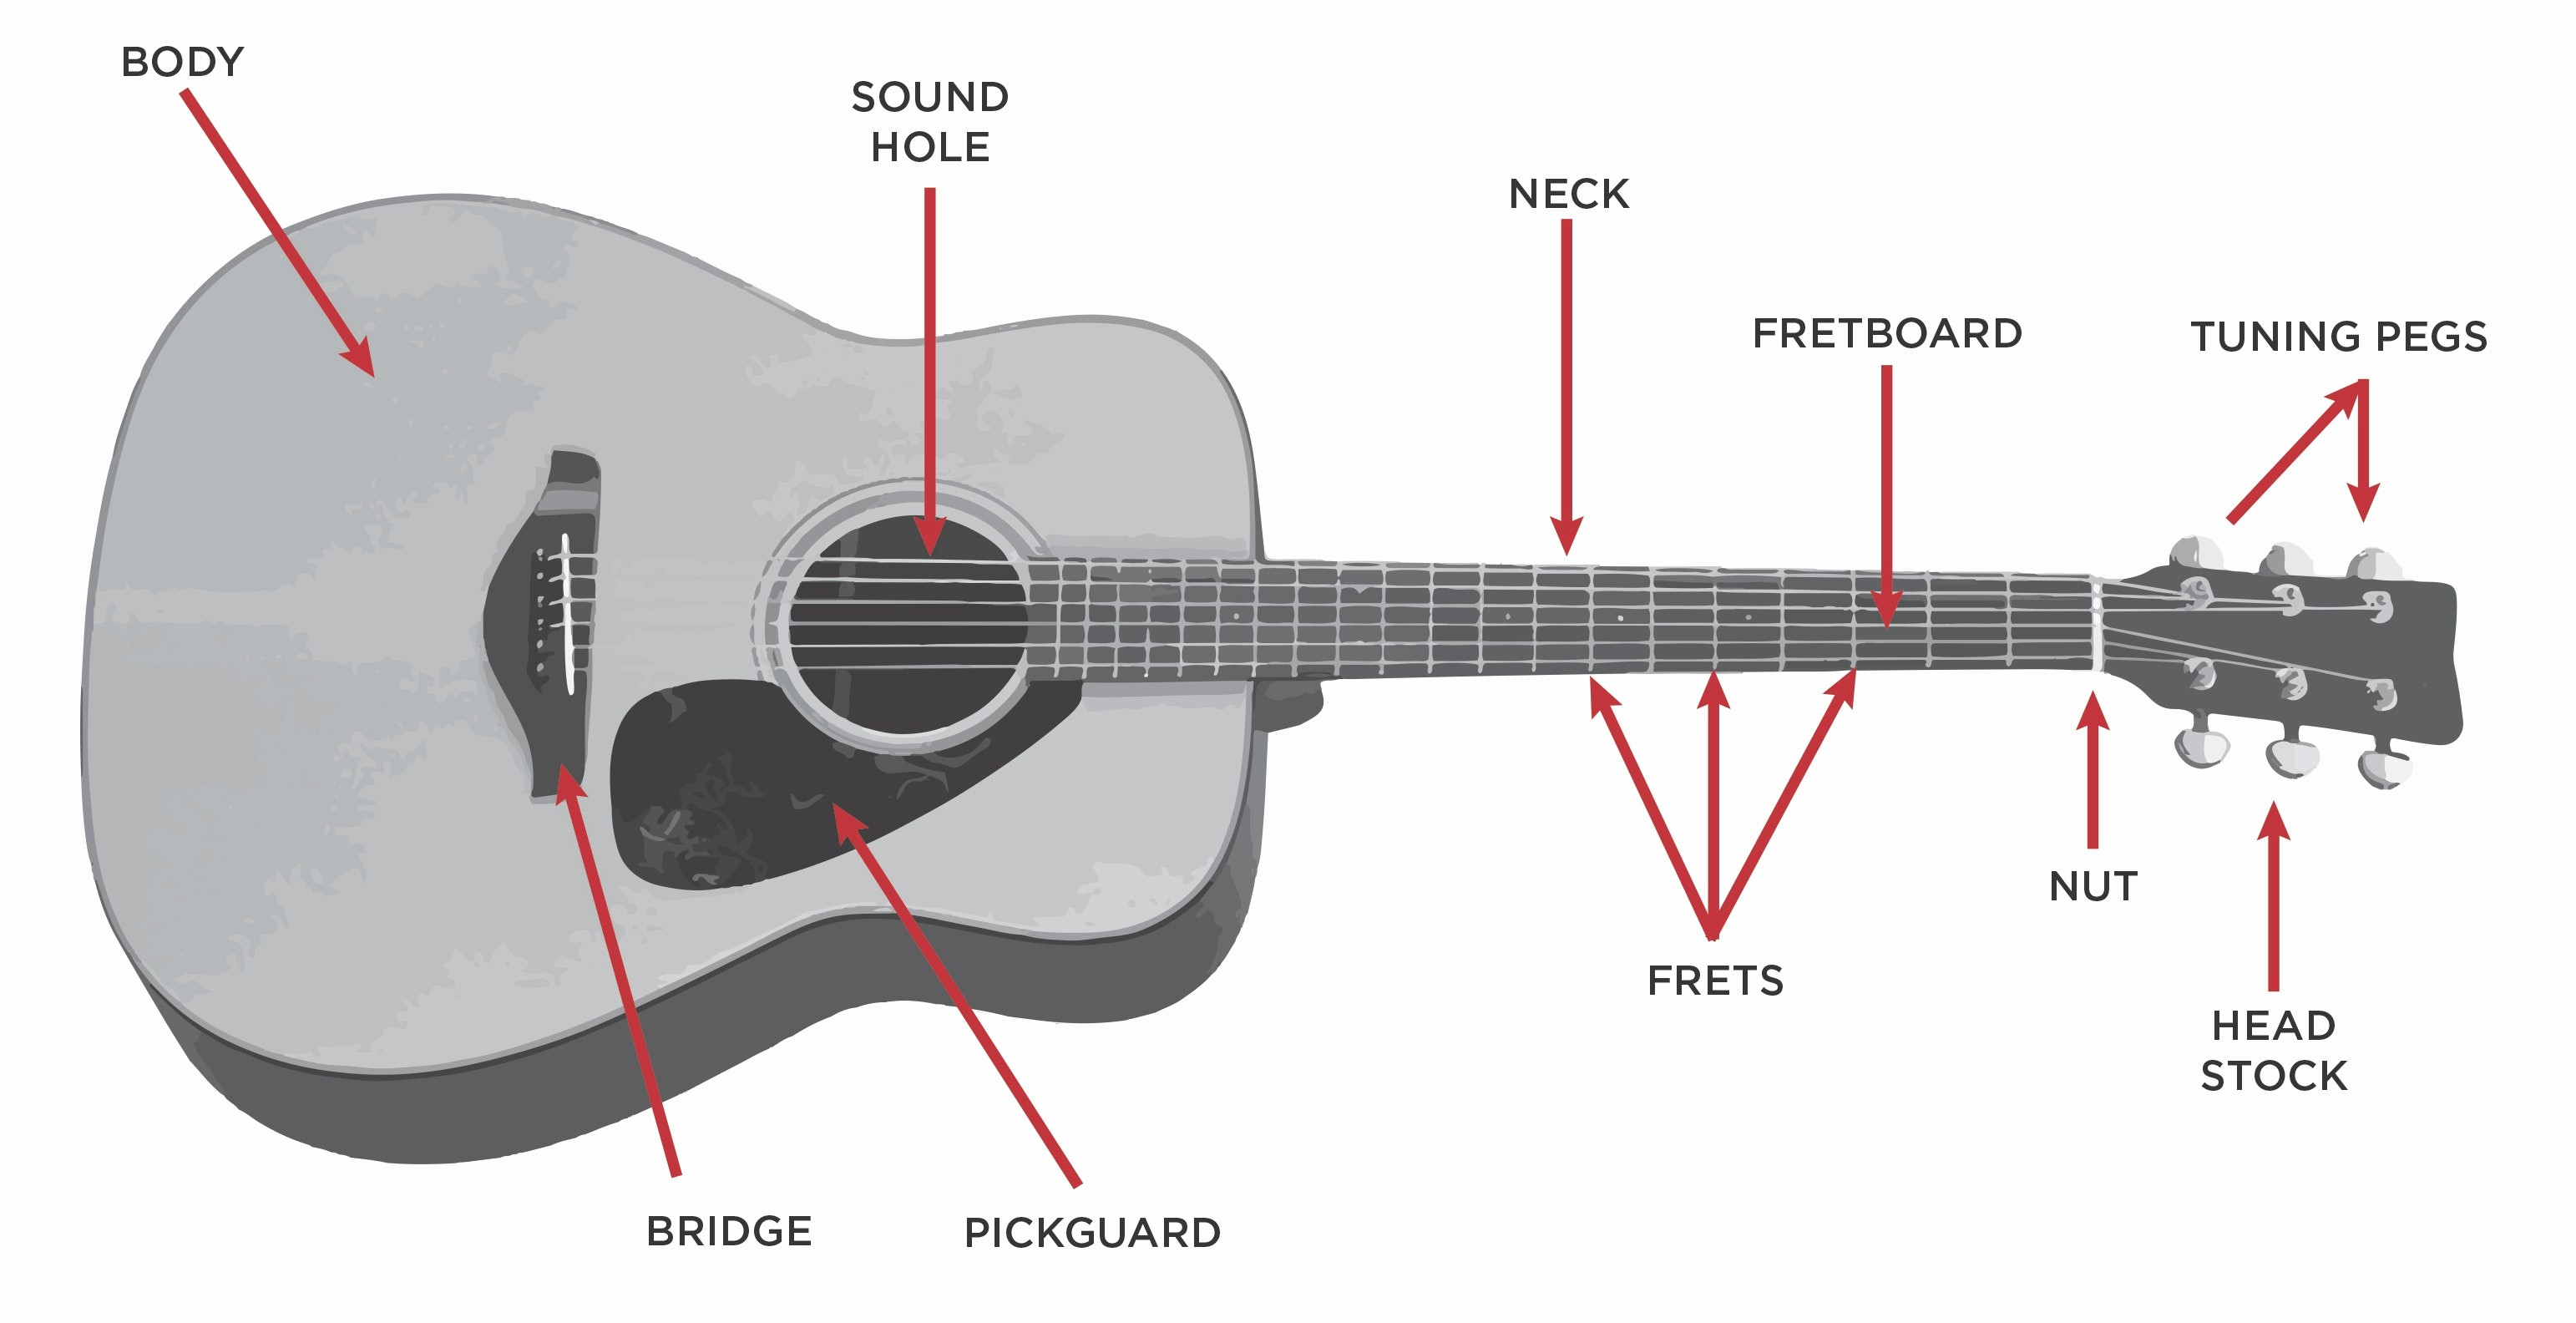 Taylor guitar diagram radio wiring diagram parts of a acoustic guitar diagram best of wiring diagram image rh mainetreasurechest com light wiring diagram taylor guitar wiring diagram asfbconference2016 Images